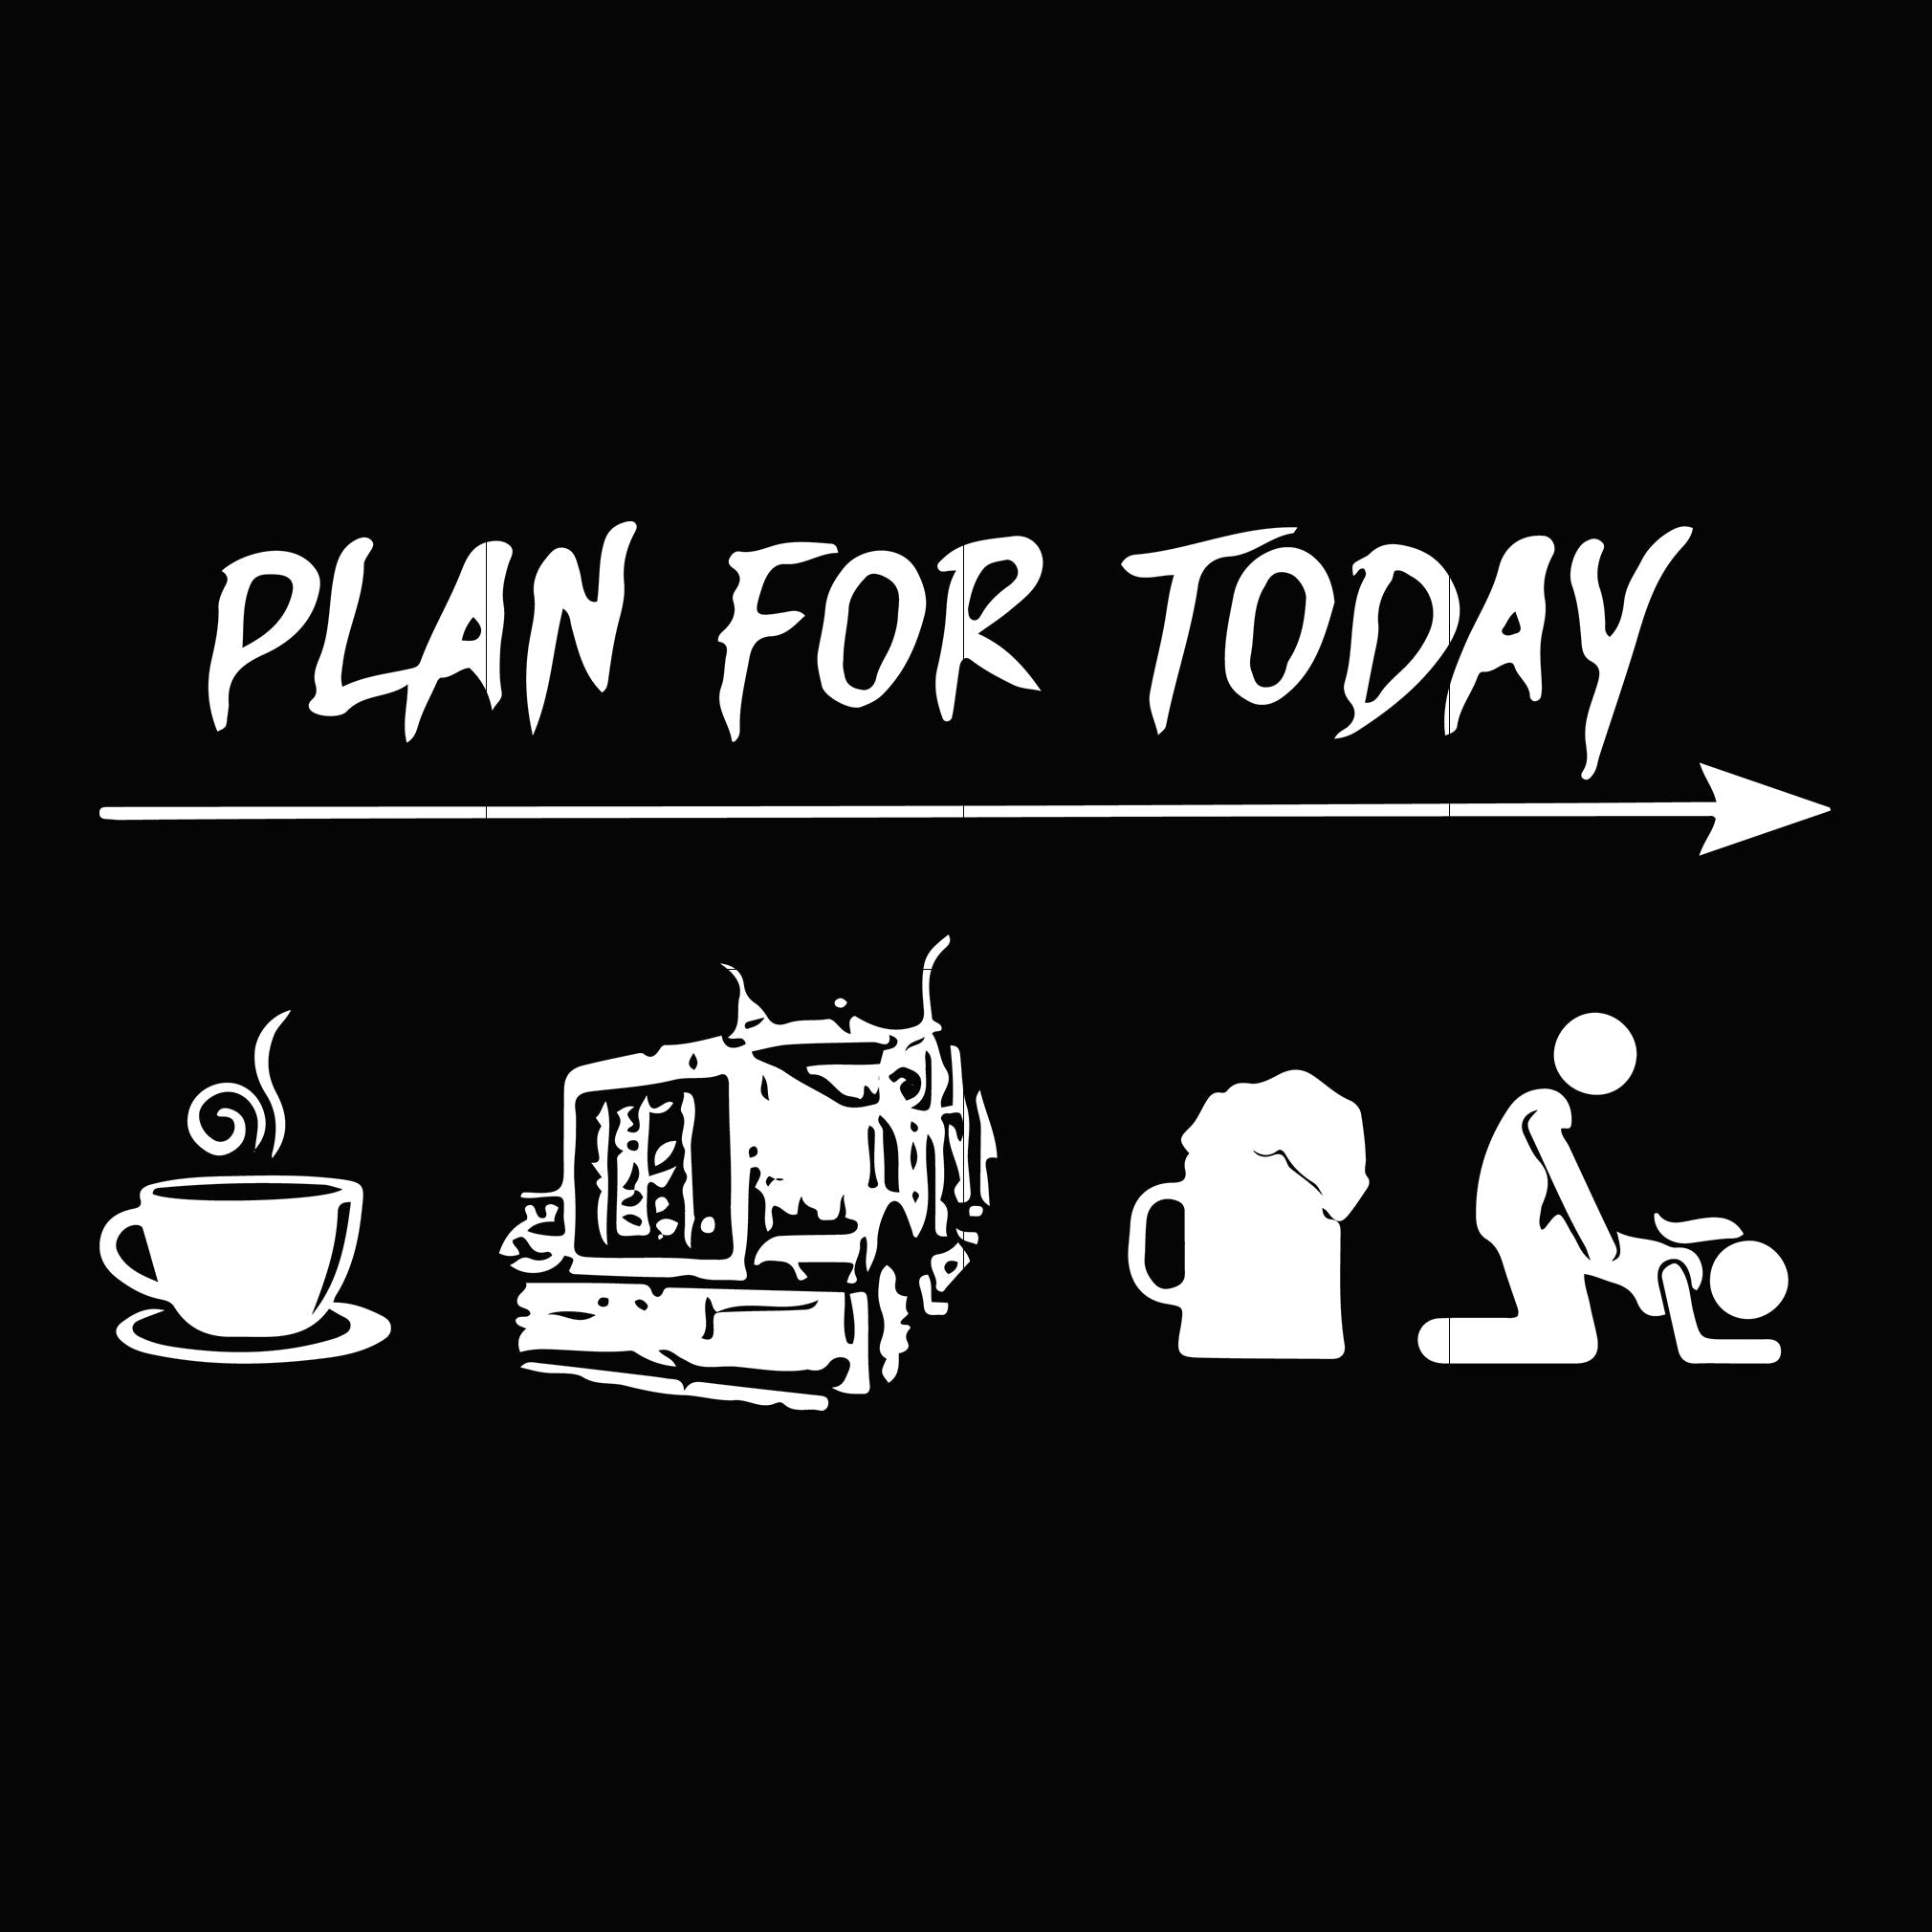 Plan for today svg ,dxf,eps,png digital file